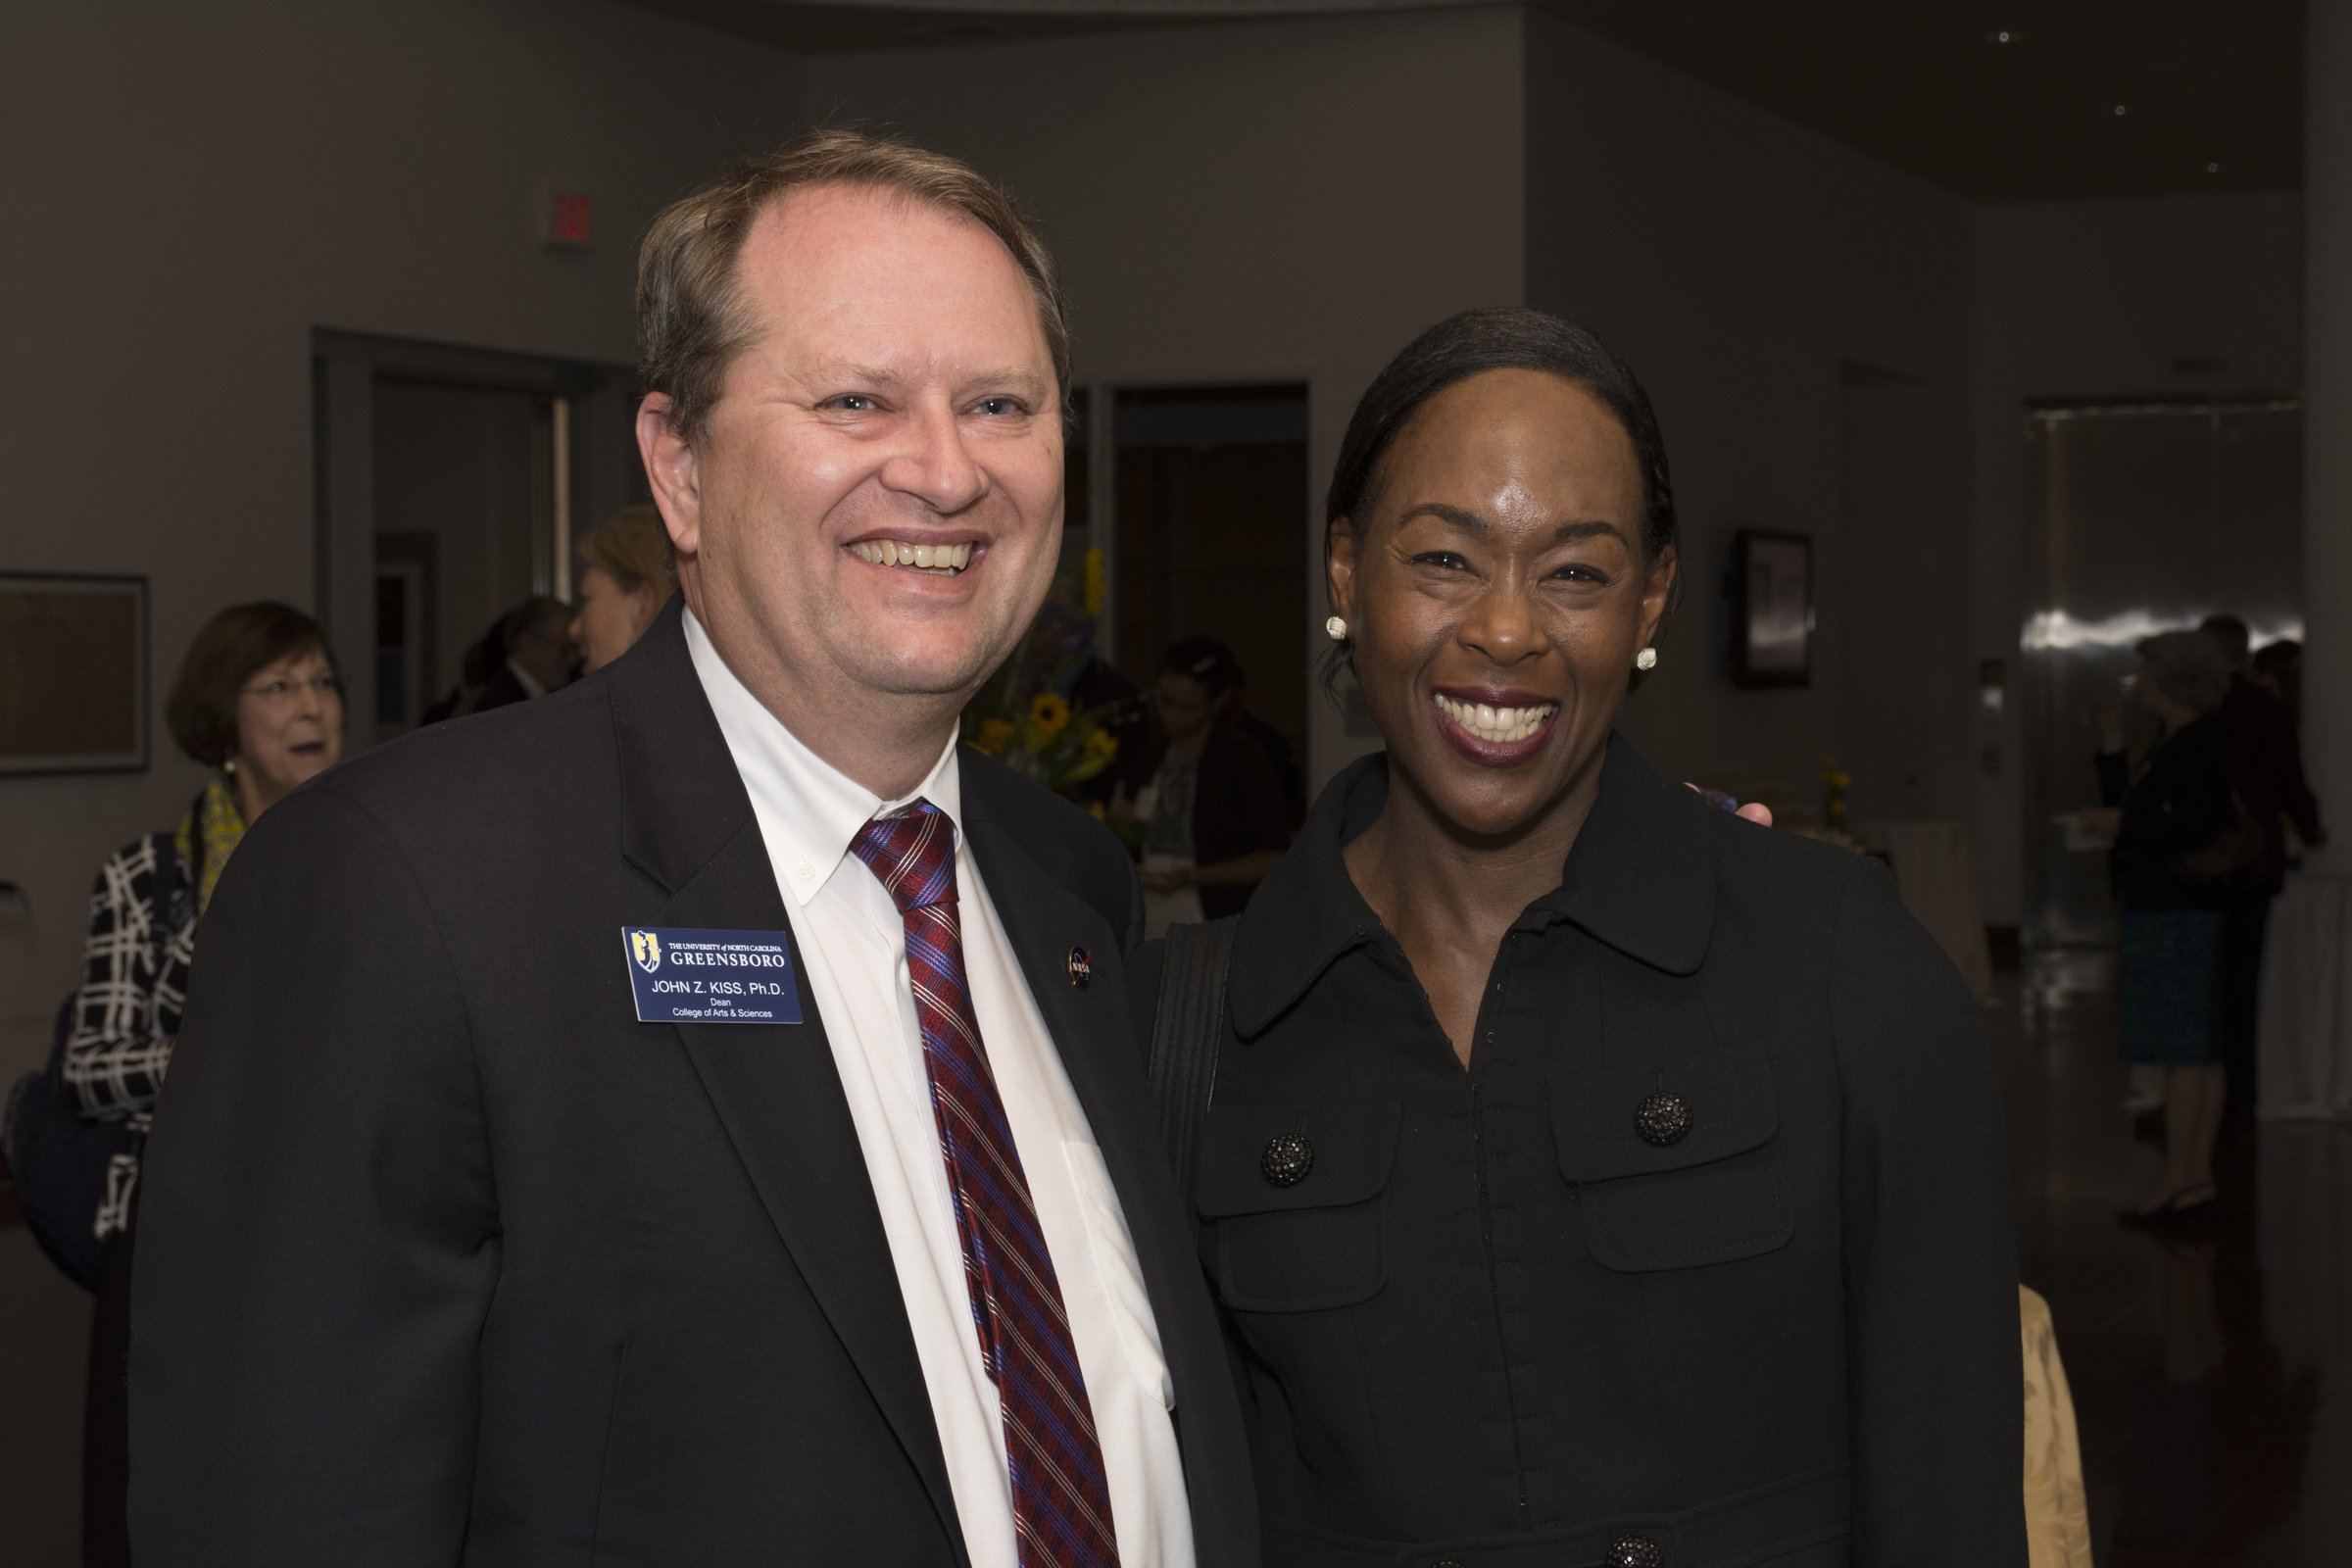 Dean Kiss with Margo Shetterly